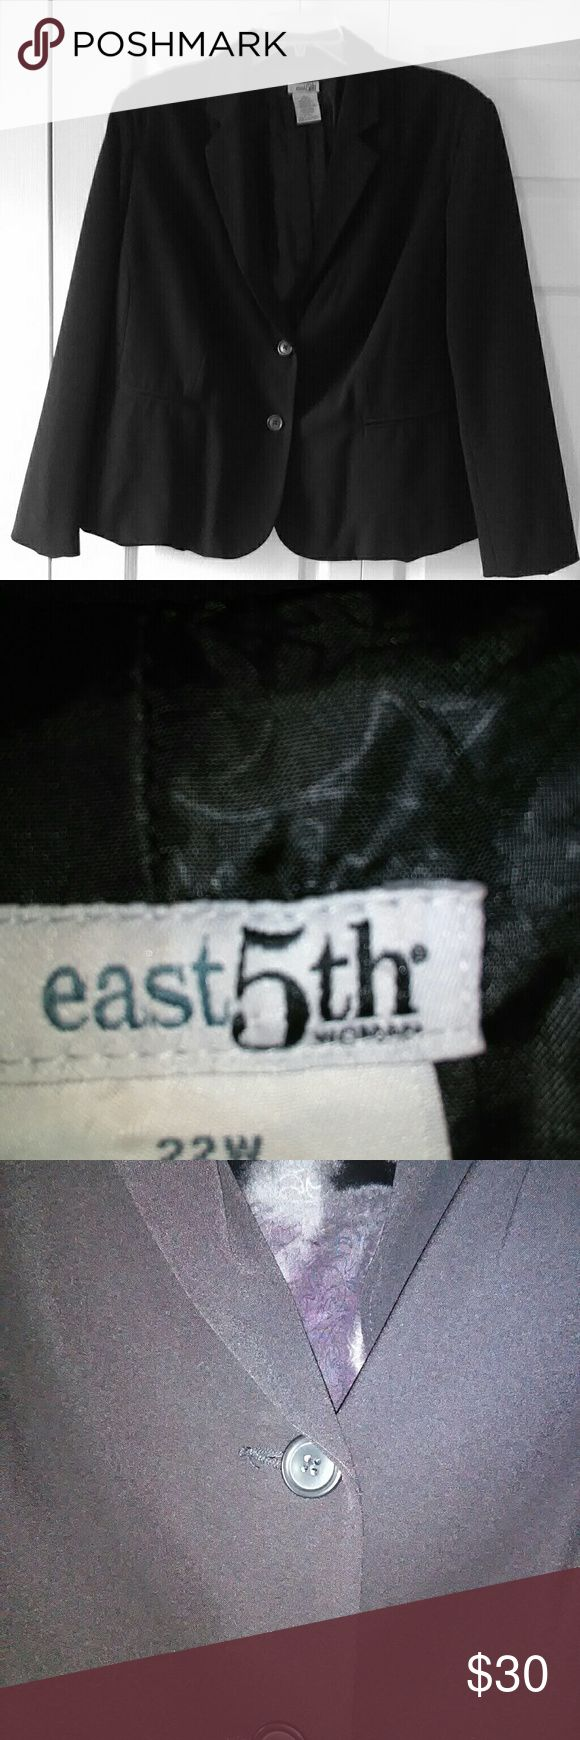 Ladies Black Blazer Excellent Used Condition East 5th Jackets & Coats Blazers